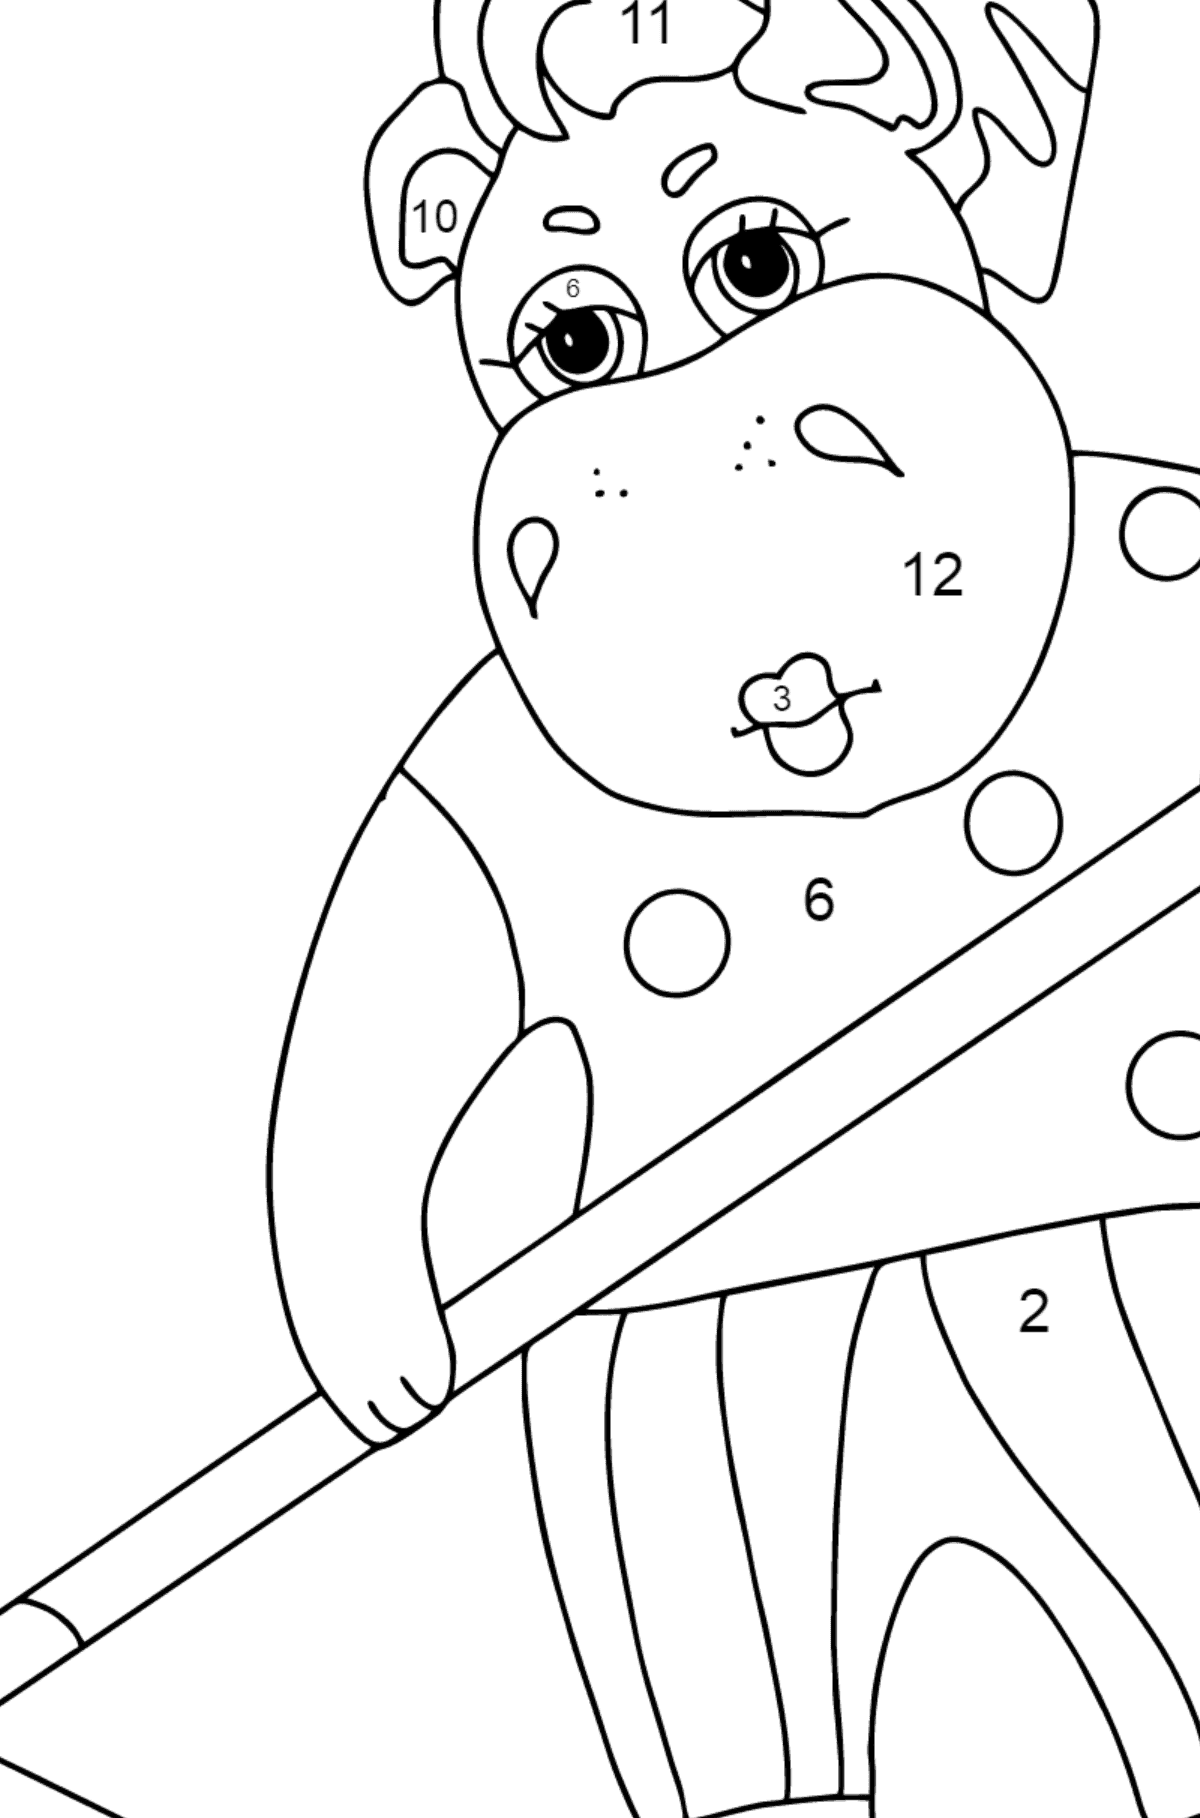 Coloring Page - A Hippo is Collecting Autumn Leaves for Children  - Color by Number